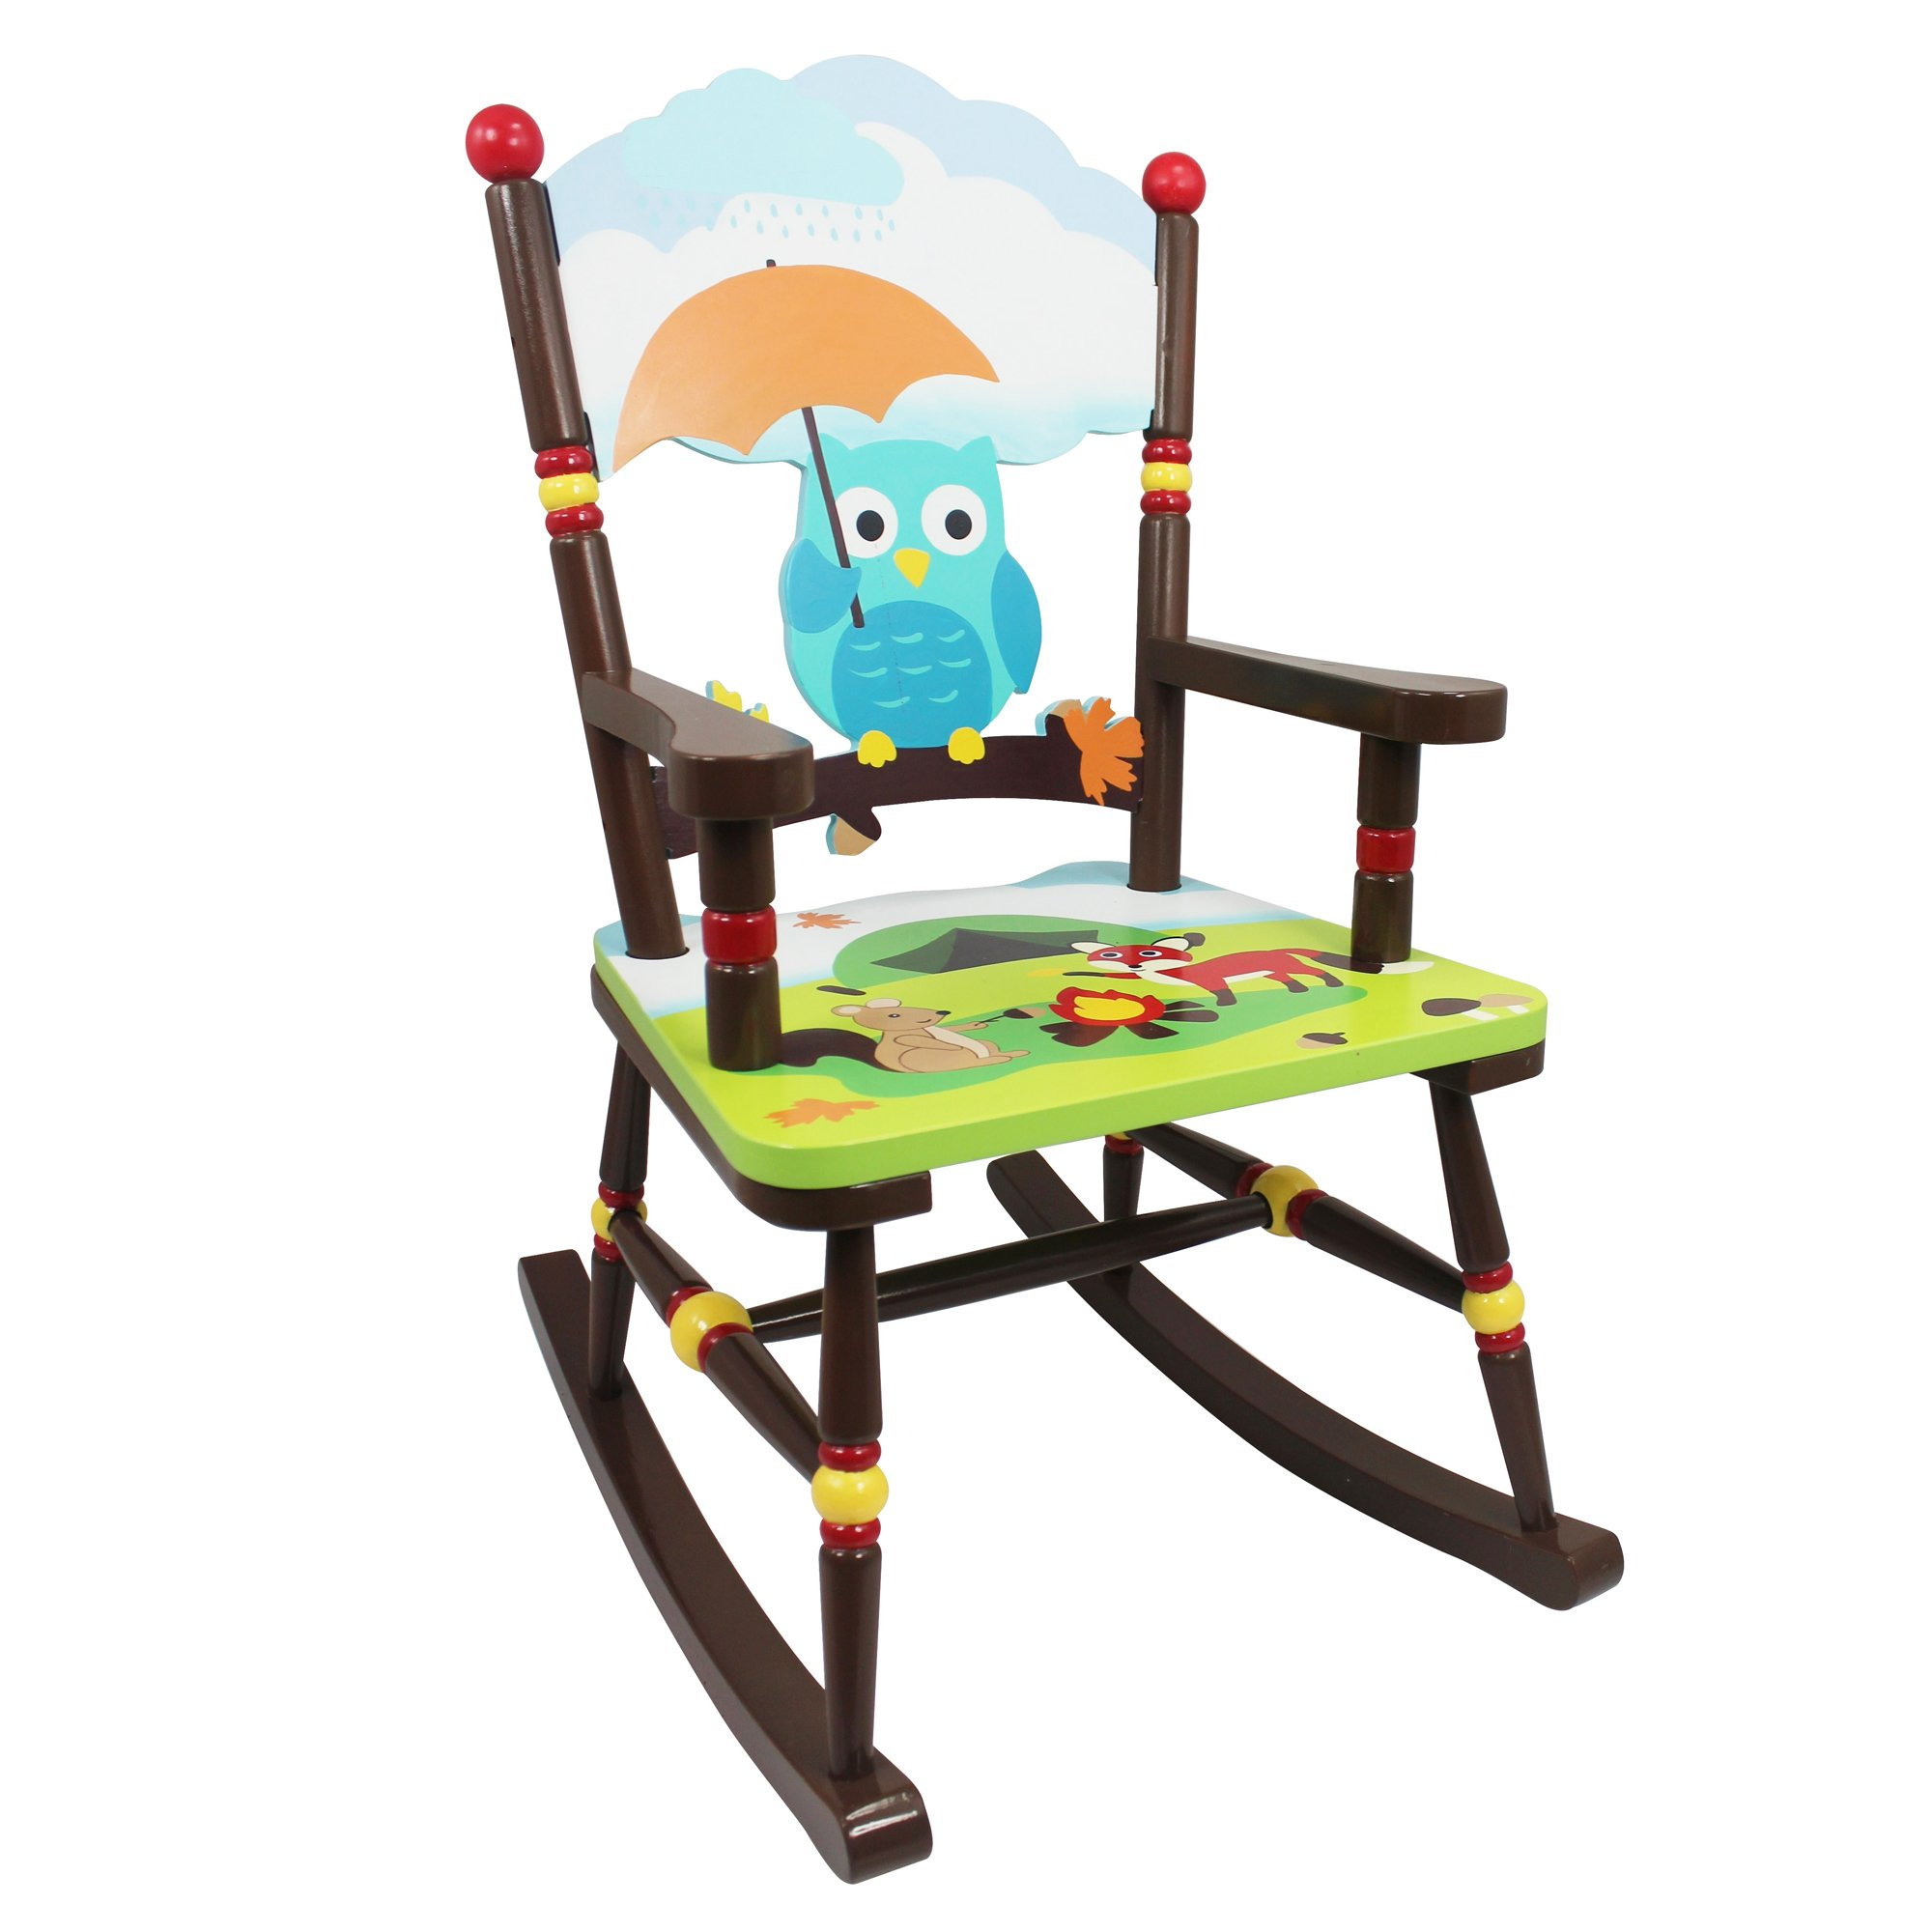 Fantasy Fields - Enchanted Woodland Thematic Kids Wooden Rocking Chair | Imagination Inspiring Hand Crafted & Hand Painted Details   Non-Toxic, Lead Free Water-based Paint